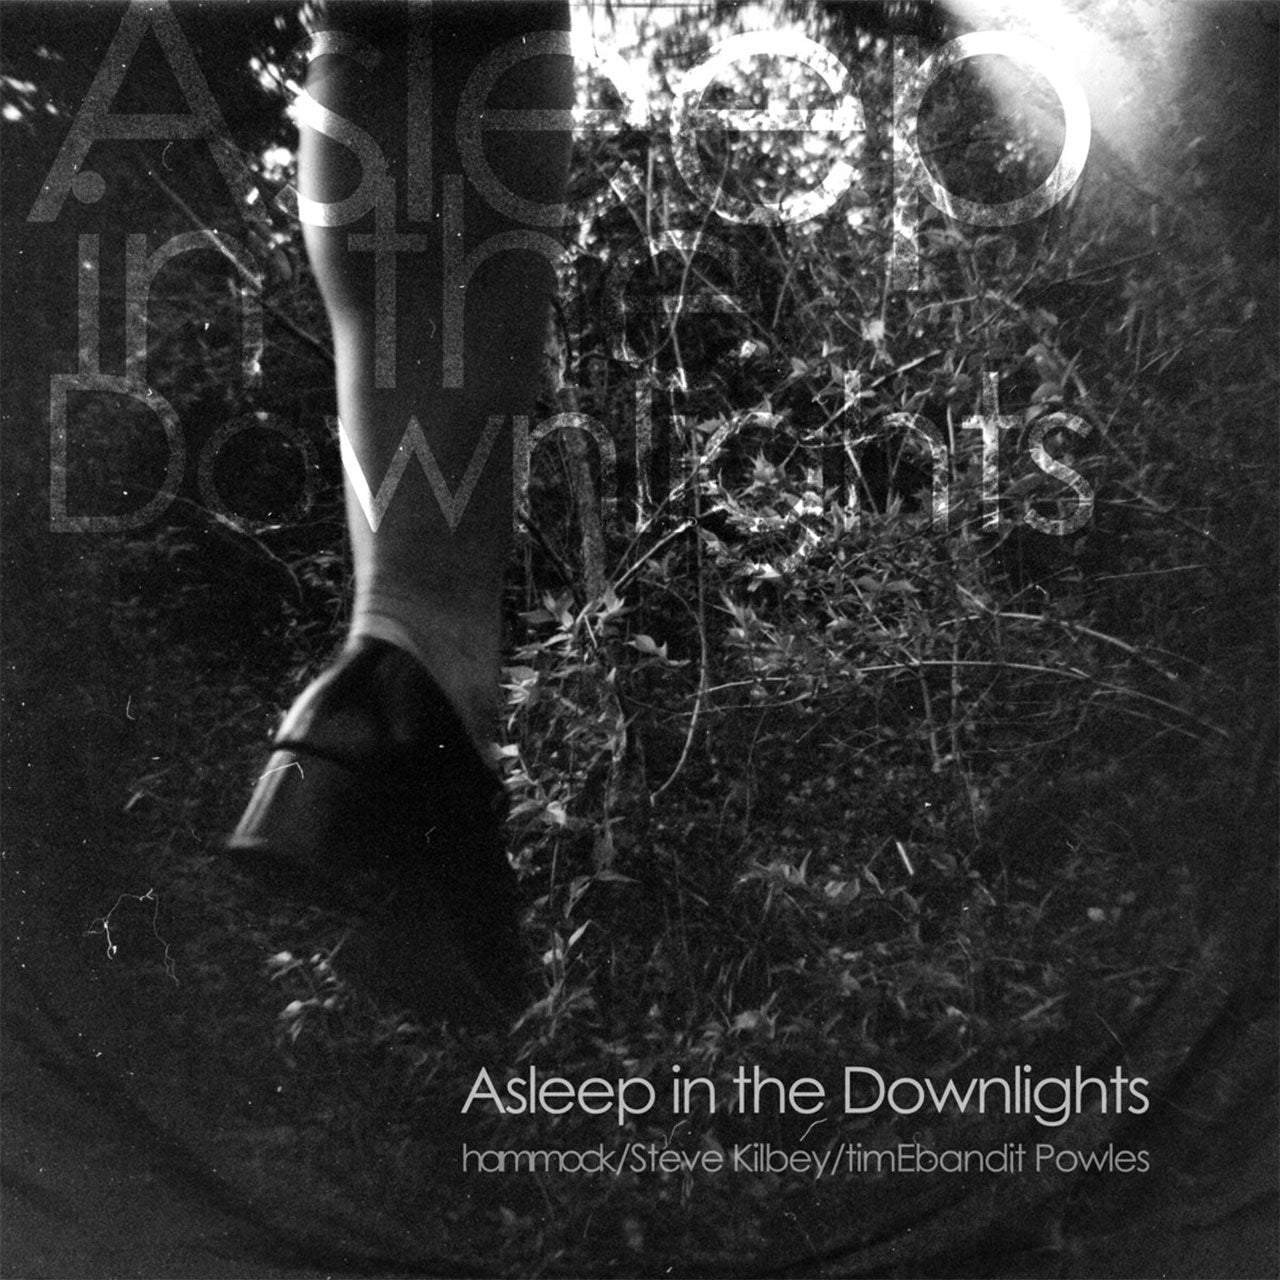 Hammock - Asleep in the Downlights (Digipak CD)